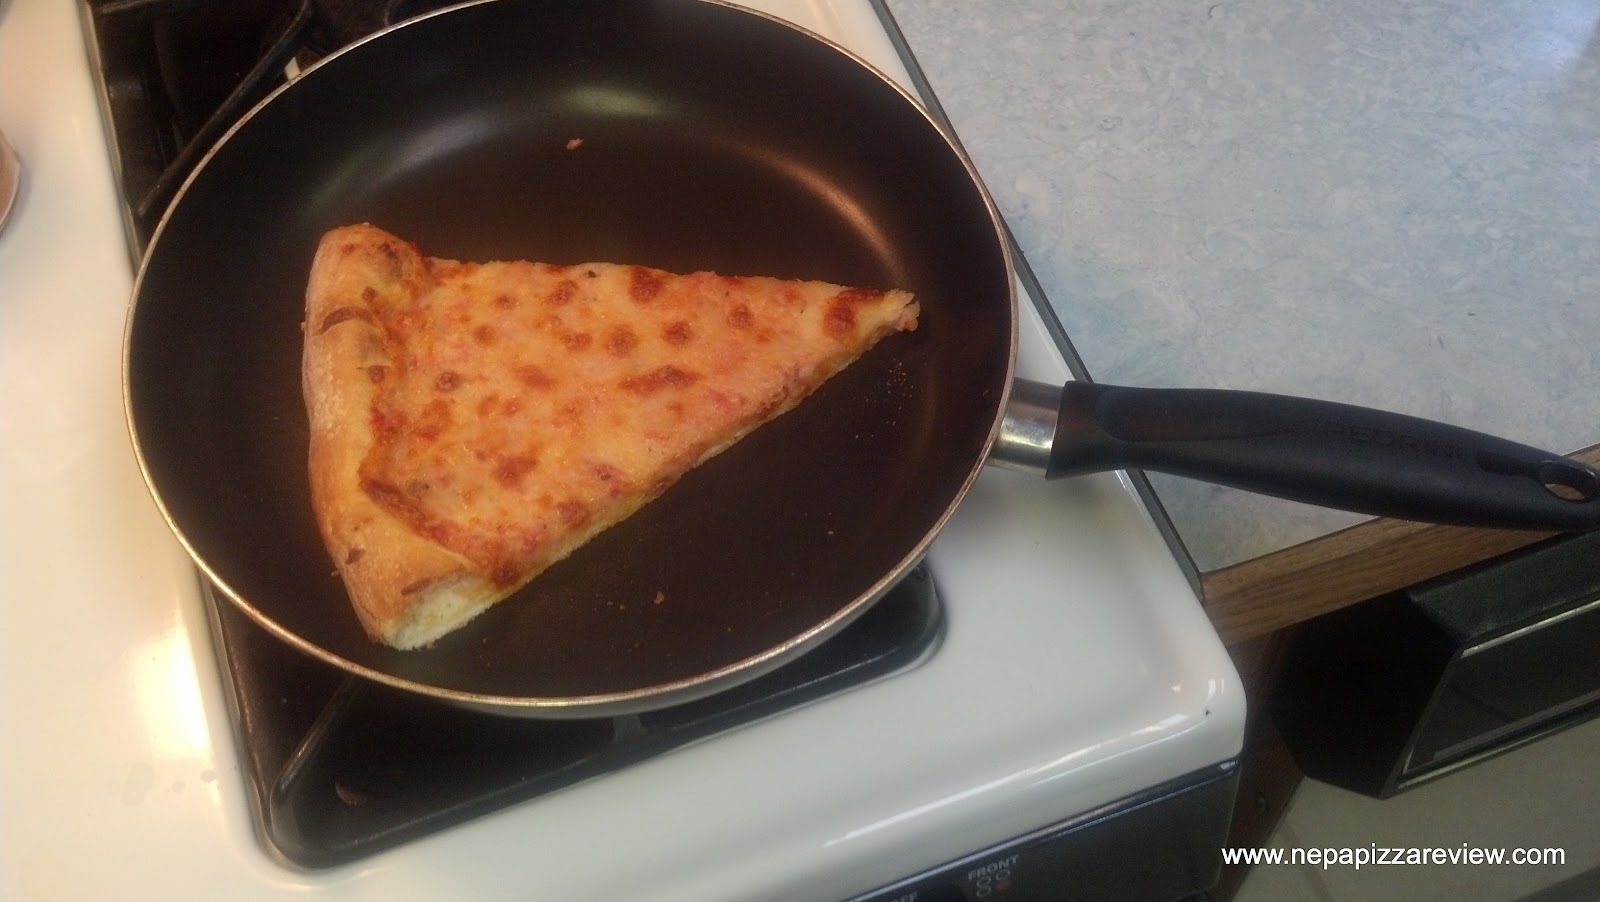 the best way to reheat cold pizza that you probably didn't know